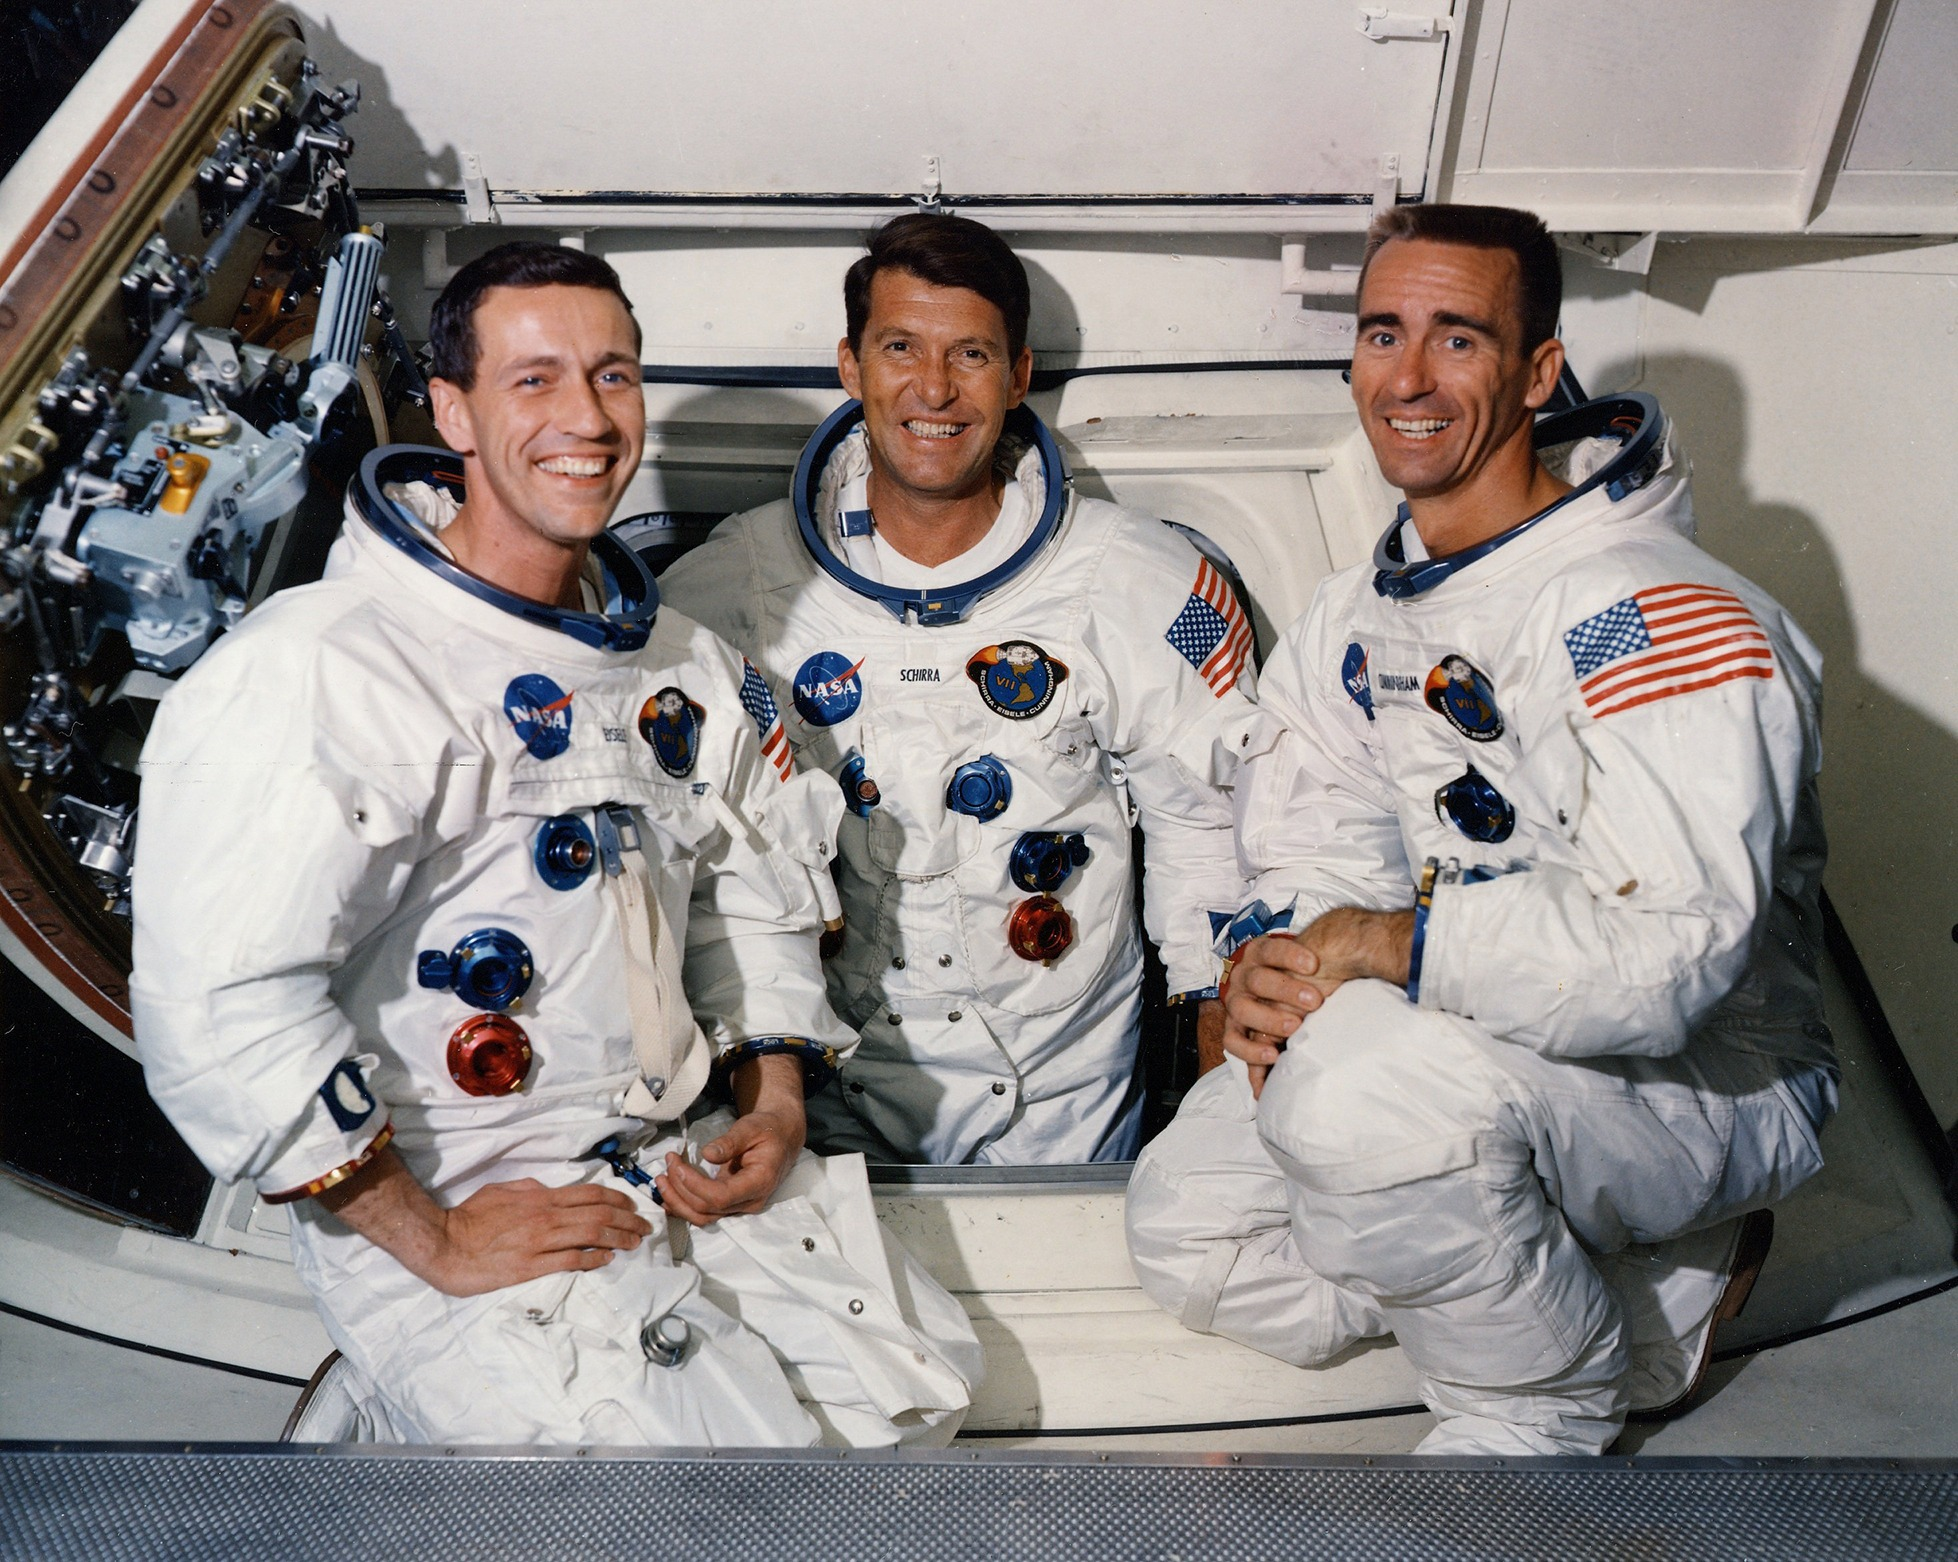 apollo essay by hamish lindsay apollo 7 crew